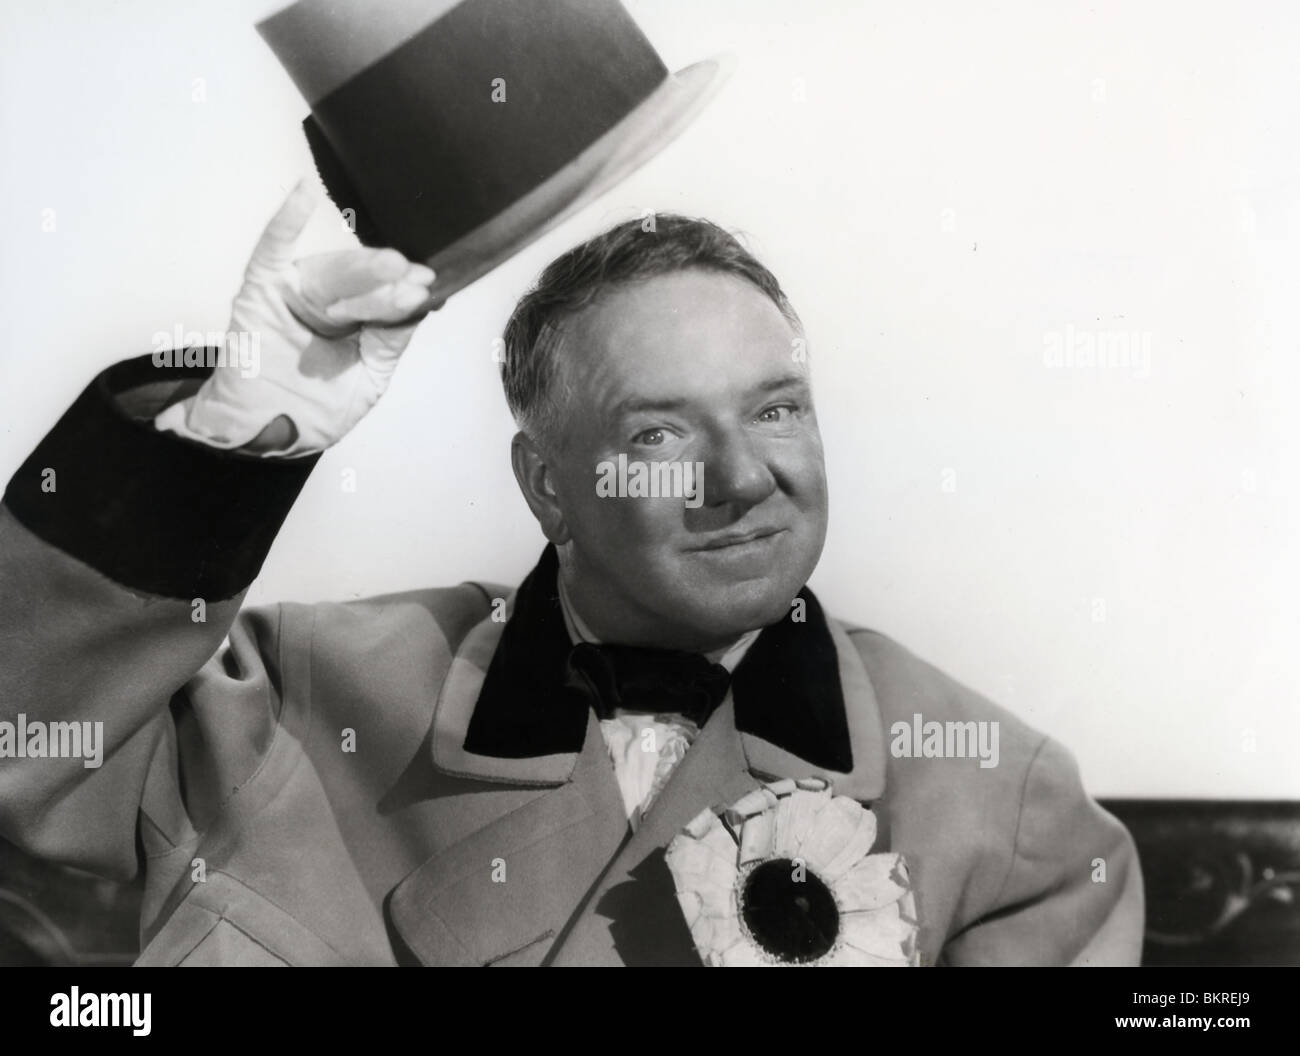 OLD FASHIONED WAY (1934) W.C FIELDS WILLIAM BEAUDINE (DIR) 004 - Stock Image